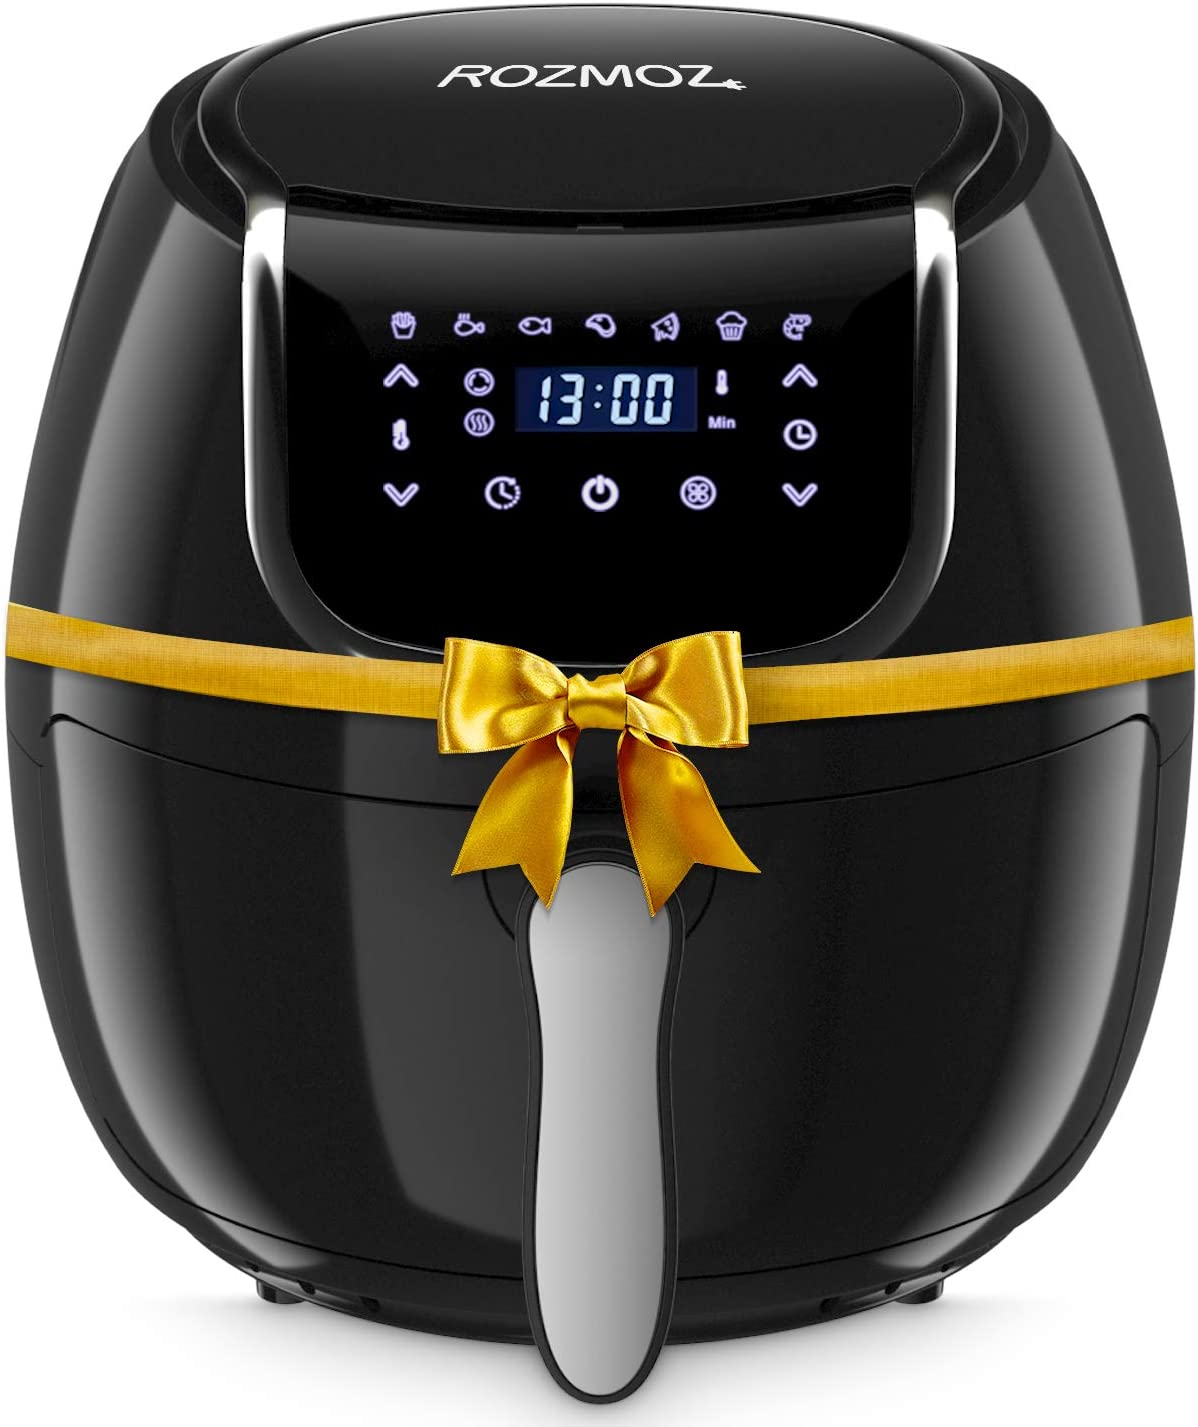 ROZMOZ Air Fryer, 7-in-1 Electric Air Fryers Oven with Automatic Shutoff & Overheat Protection, 1400W Oil-less Air Fryers,Nonstick Basket, LED Touchscreen, 4.2QT, Black